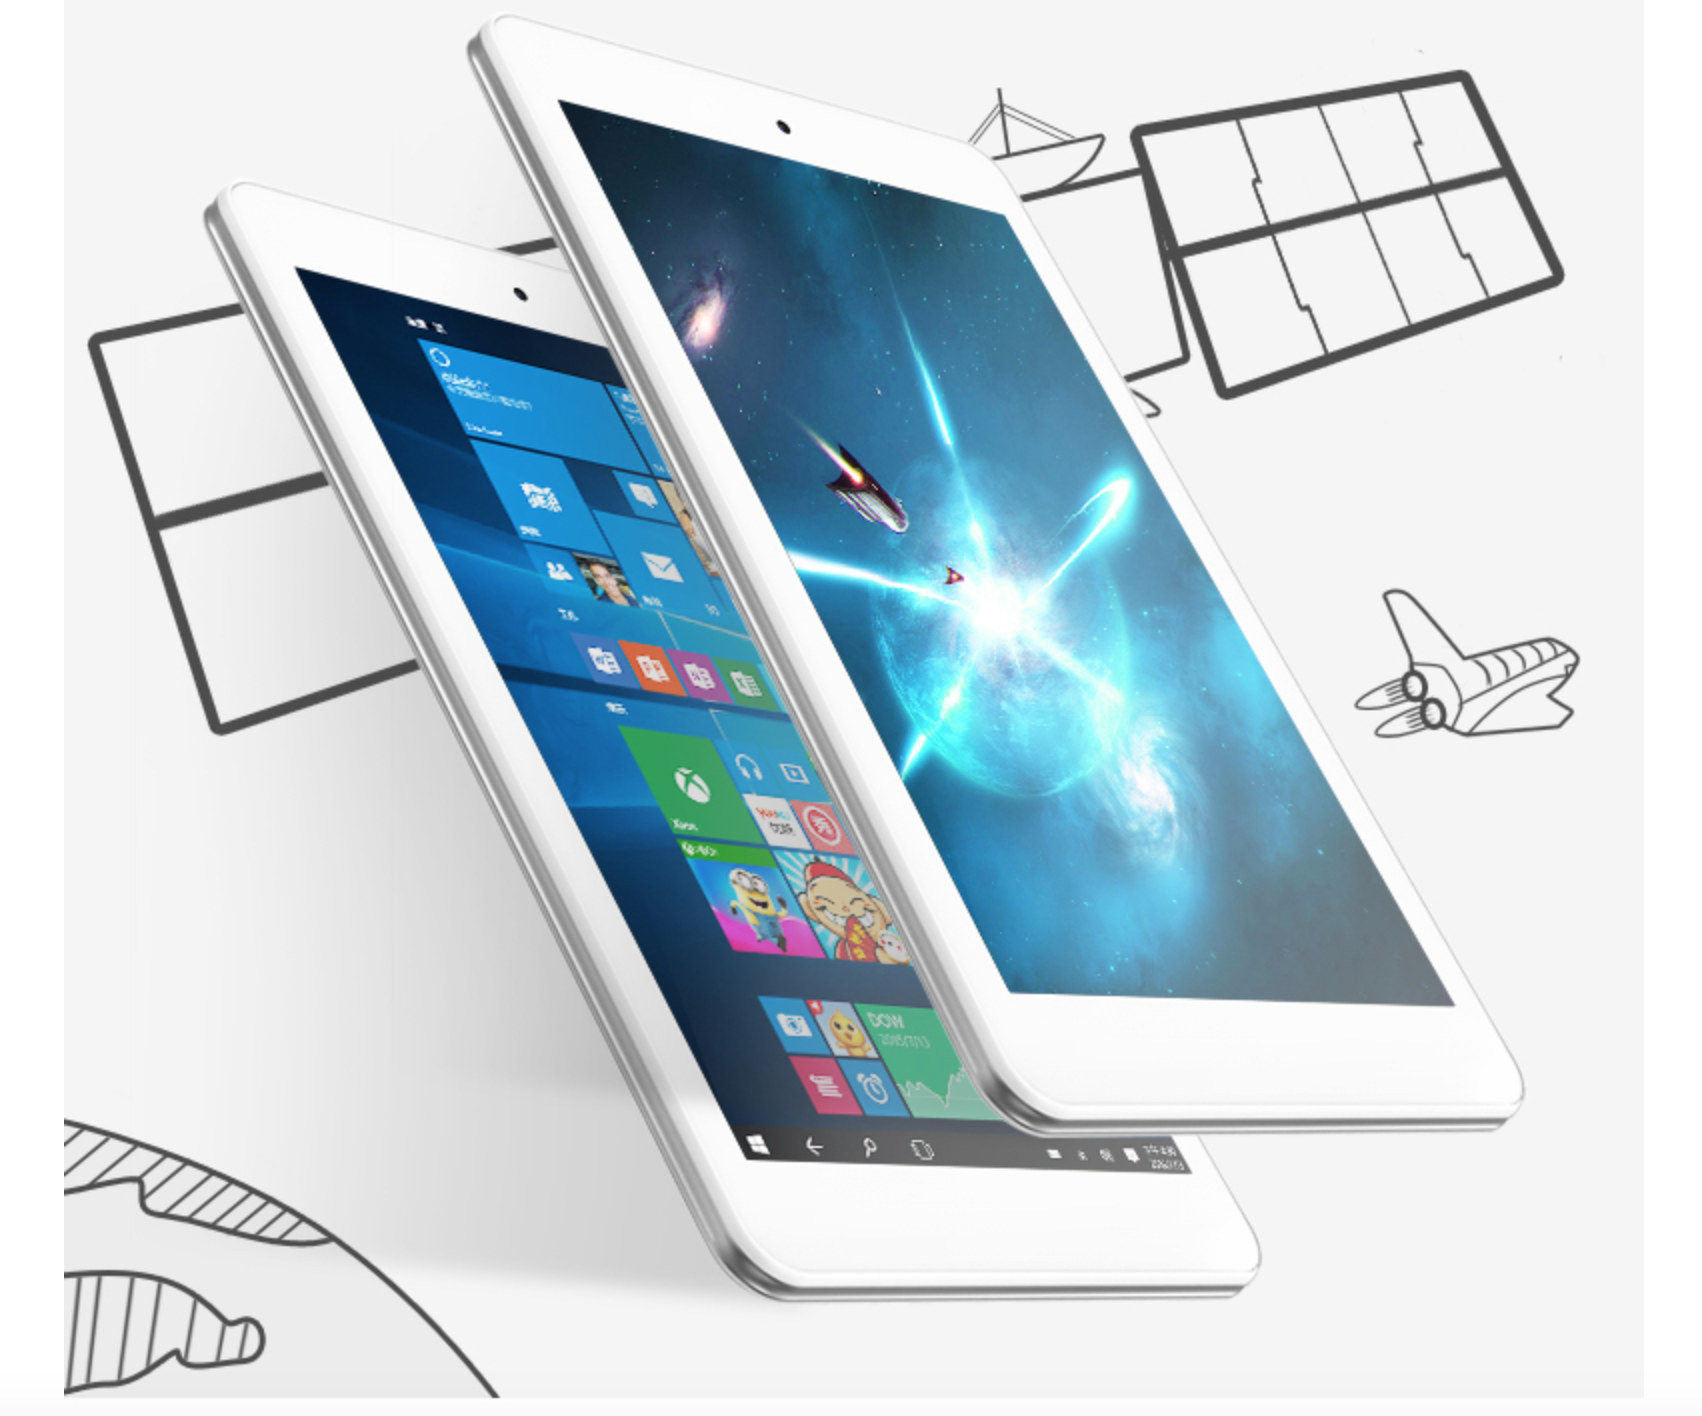 8 ''ips cube iwork8 aire windows10 + android 5.1 tablet pc 1920x1200 intel z8300